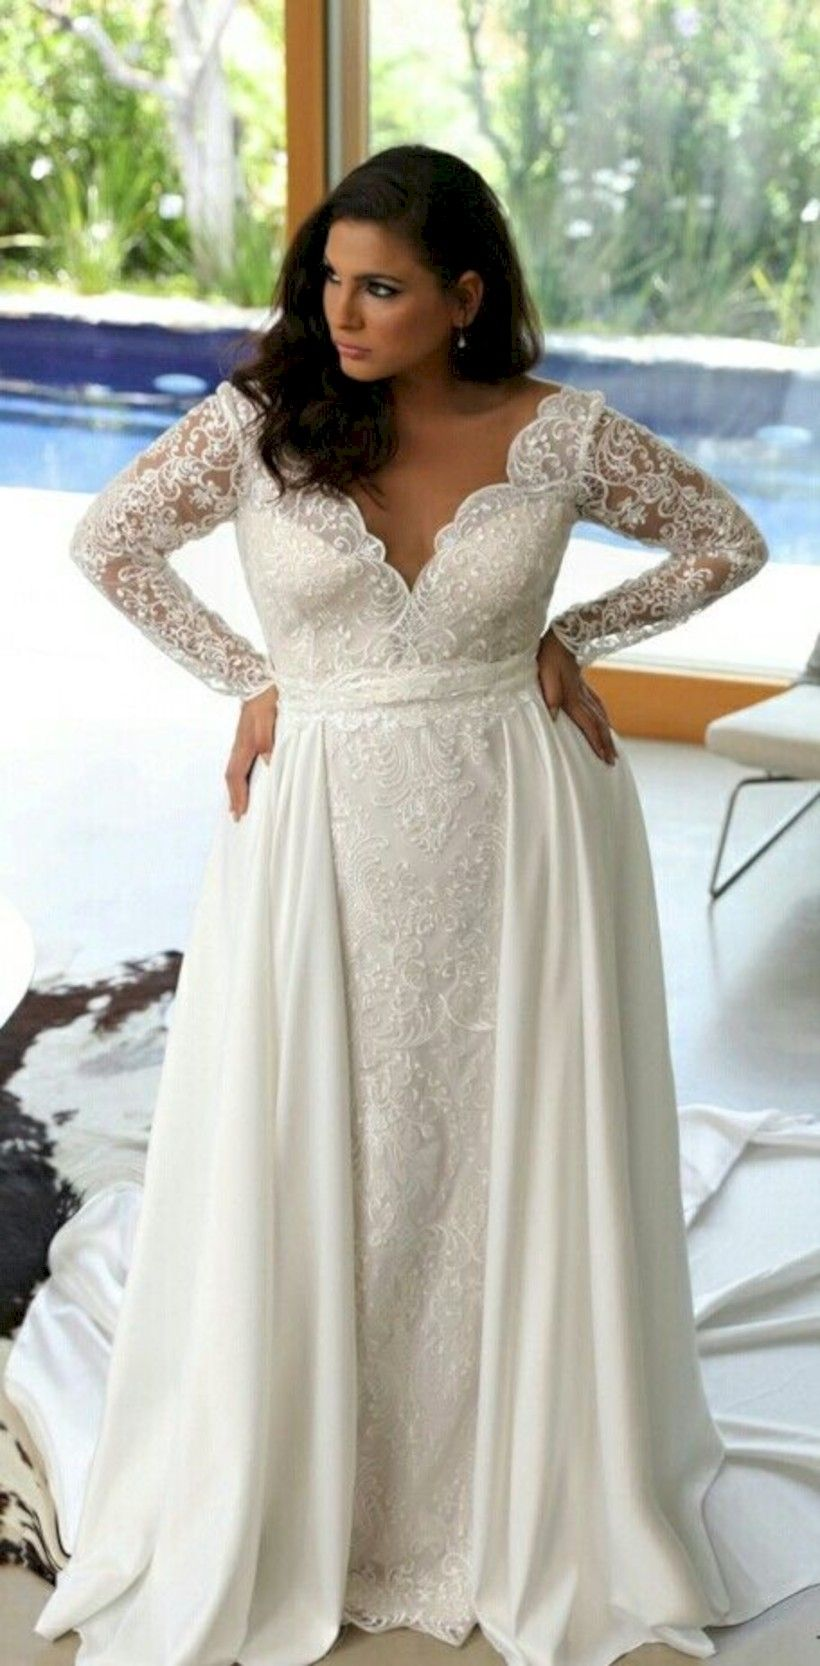 cb317ccf129 cool 44 Beautiful Plus Size Winter Wedding Dress Ideas  http   viscawedding.com